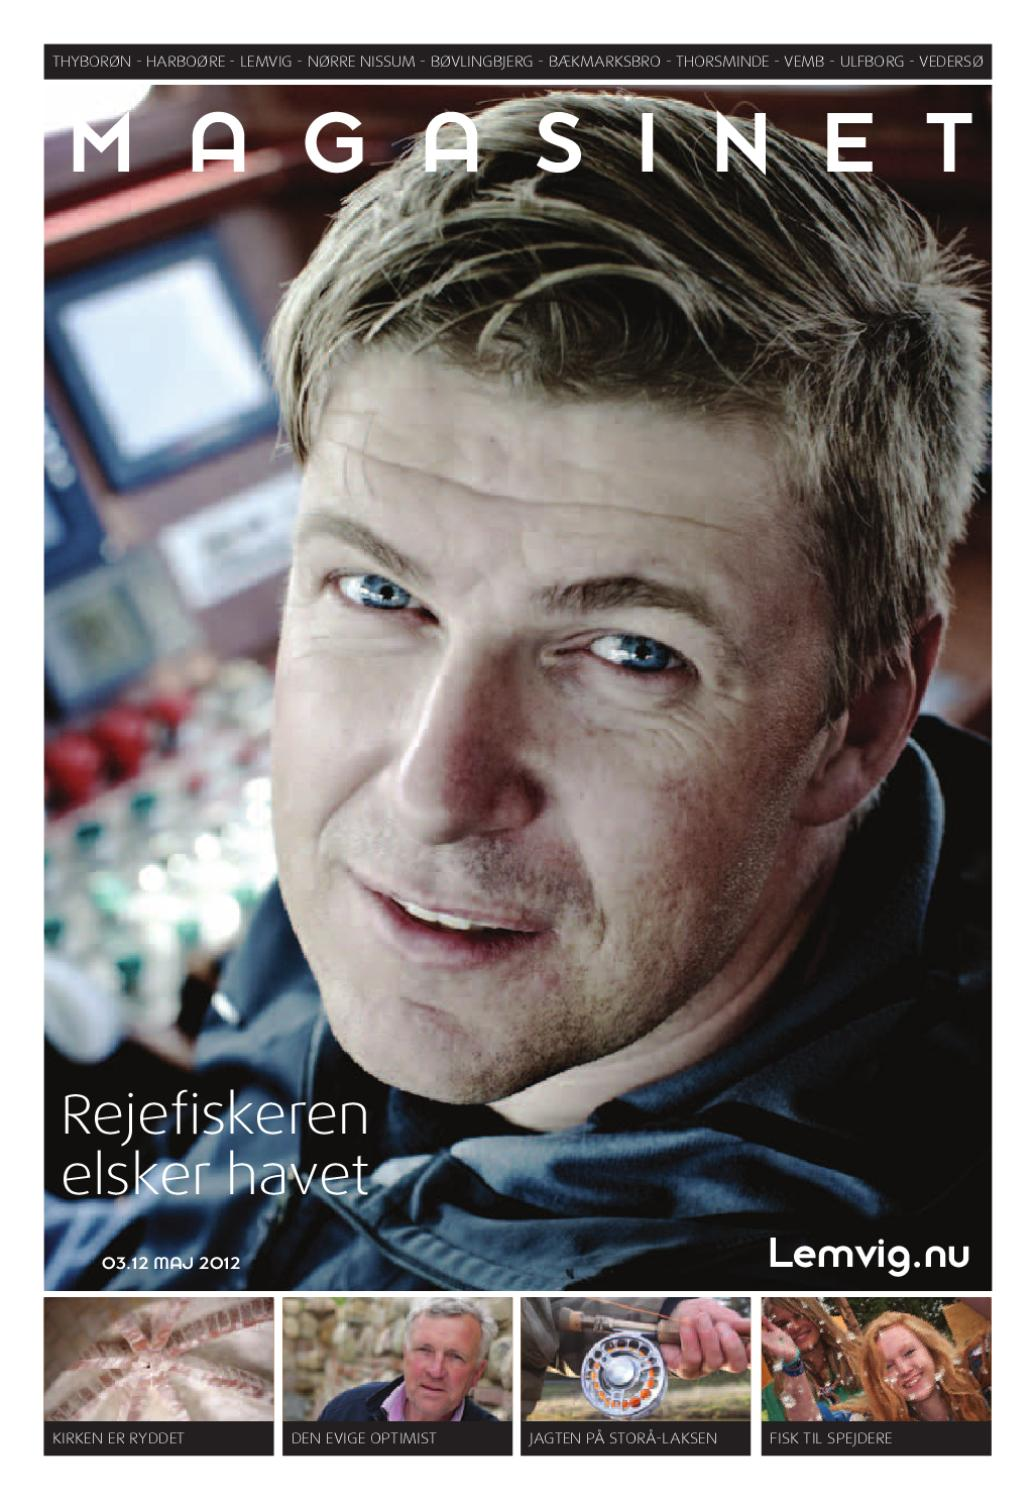 bb30d839428f Magasinet Lemvig 0312 maj by Henrik Vinther Krogh - issuu